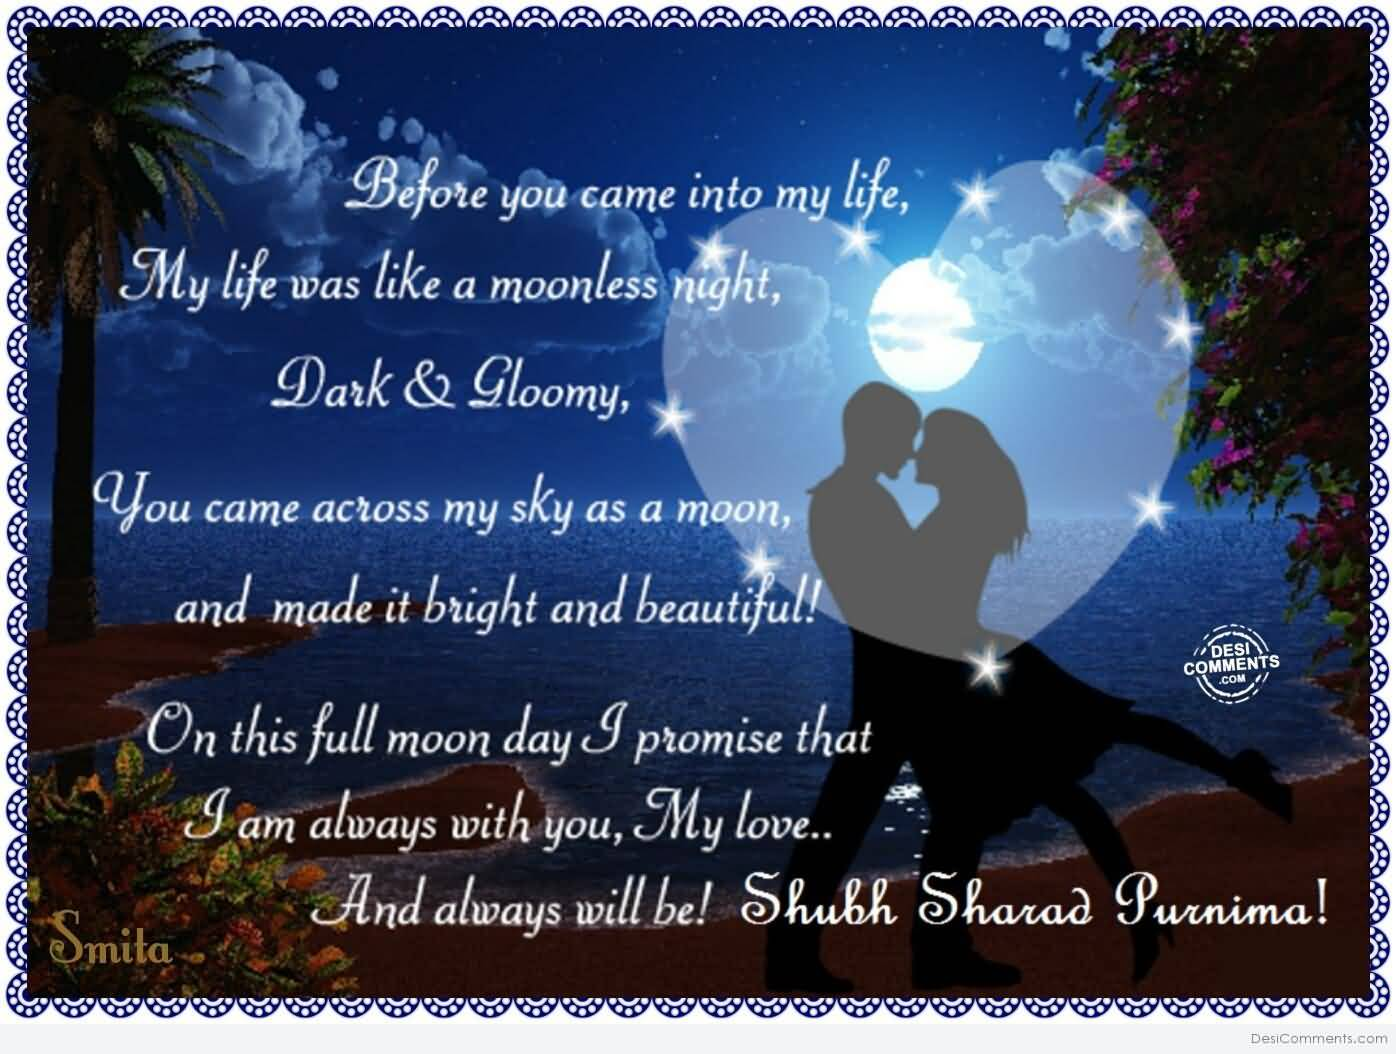 I Am Always With You My Love And Always Will Be Shubh Sharad Purnima